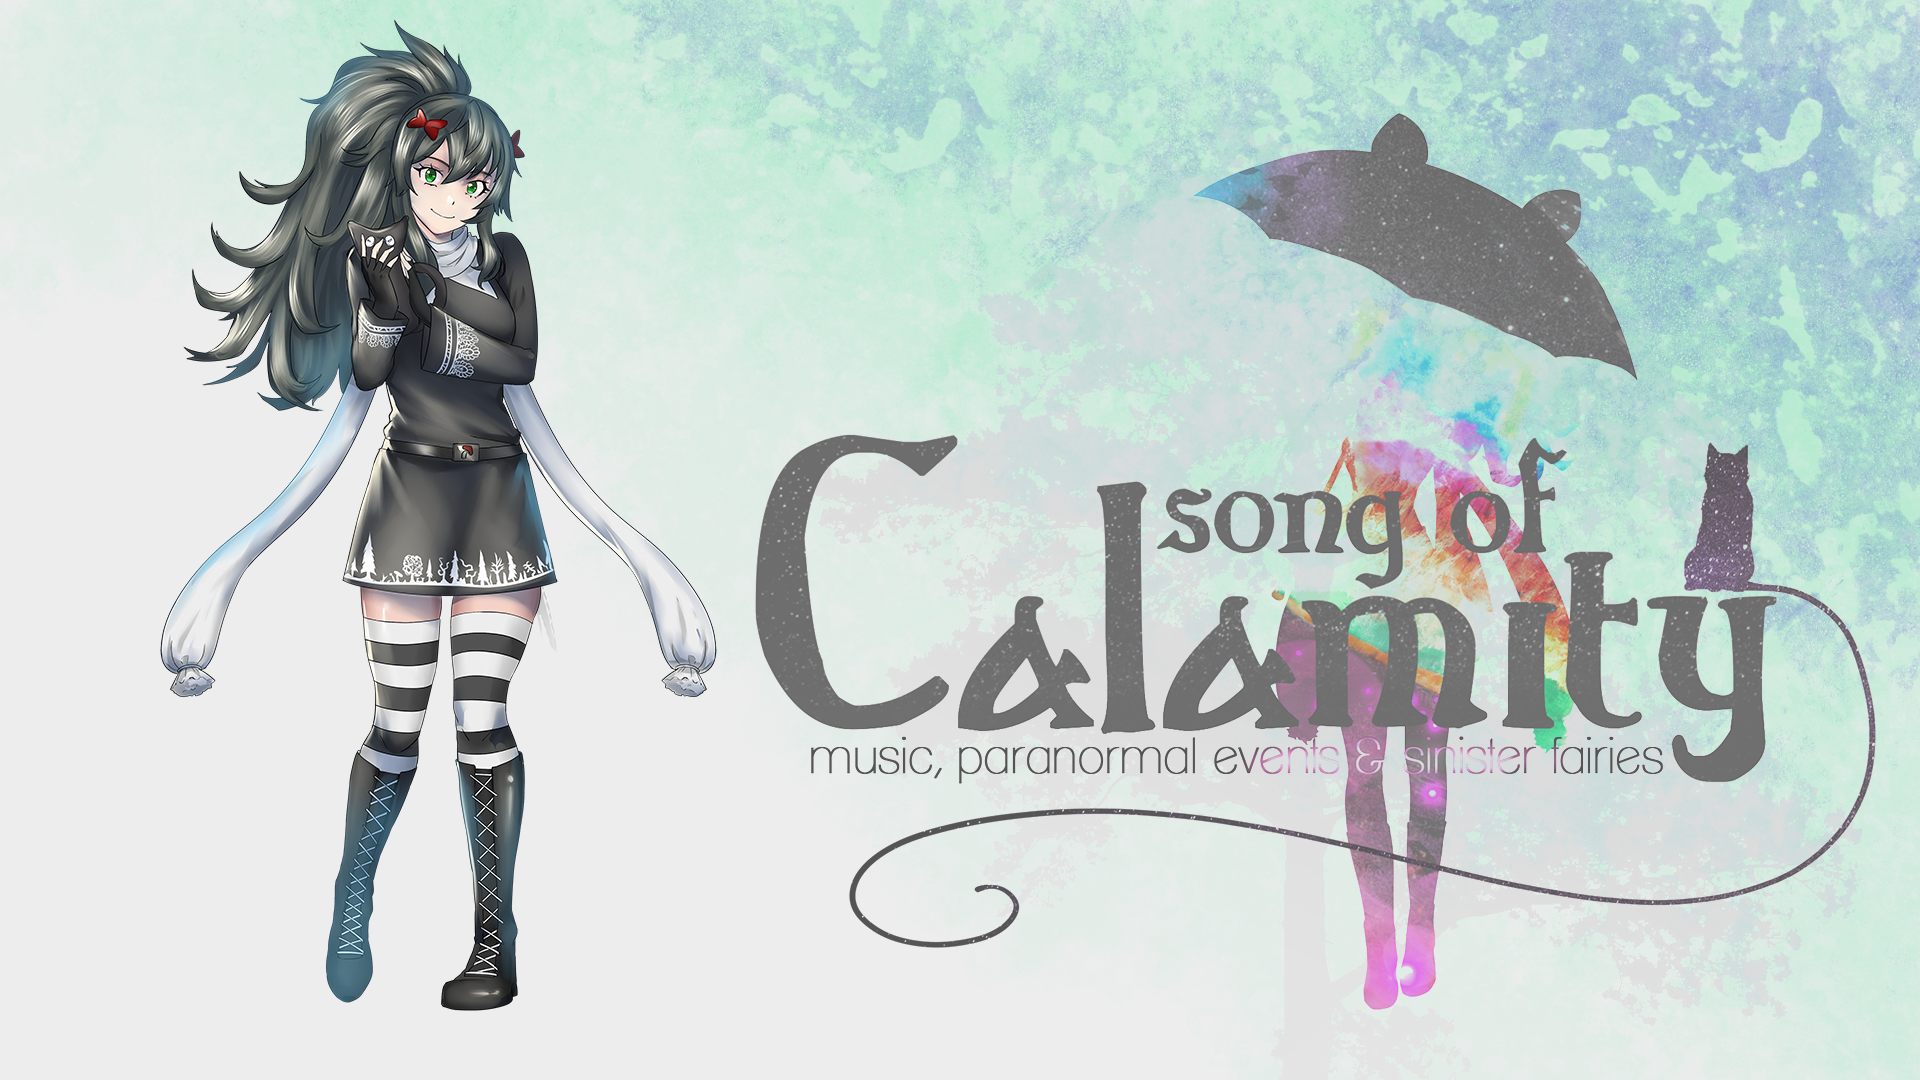 Song of Calamity Wallpaper 3. Free download :-)